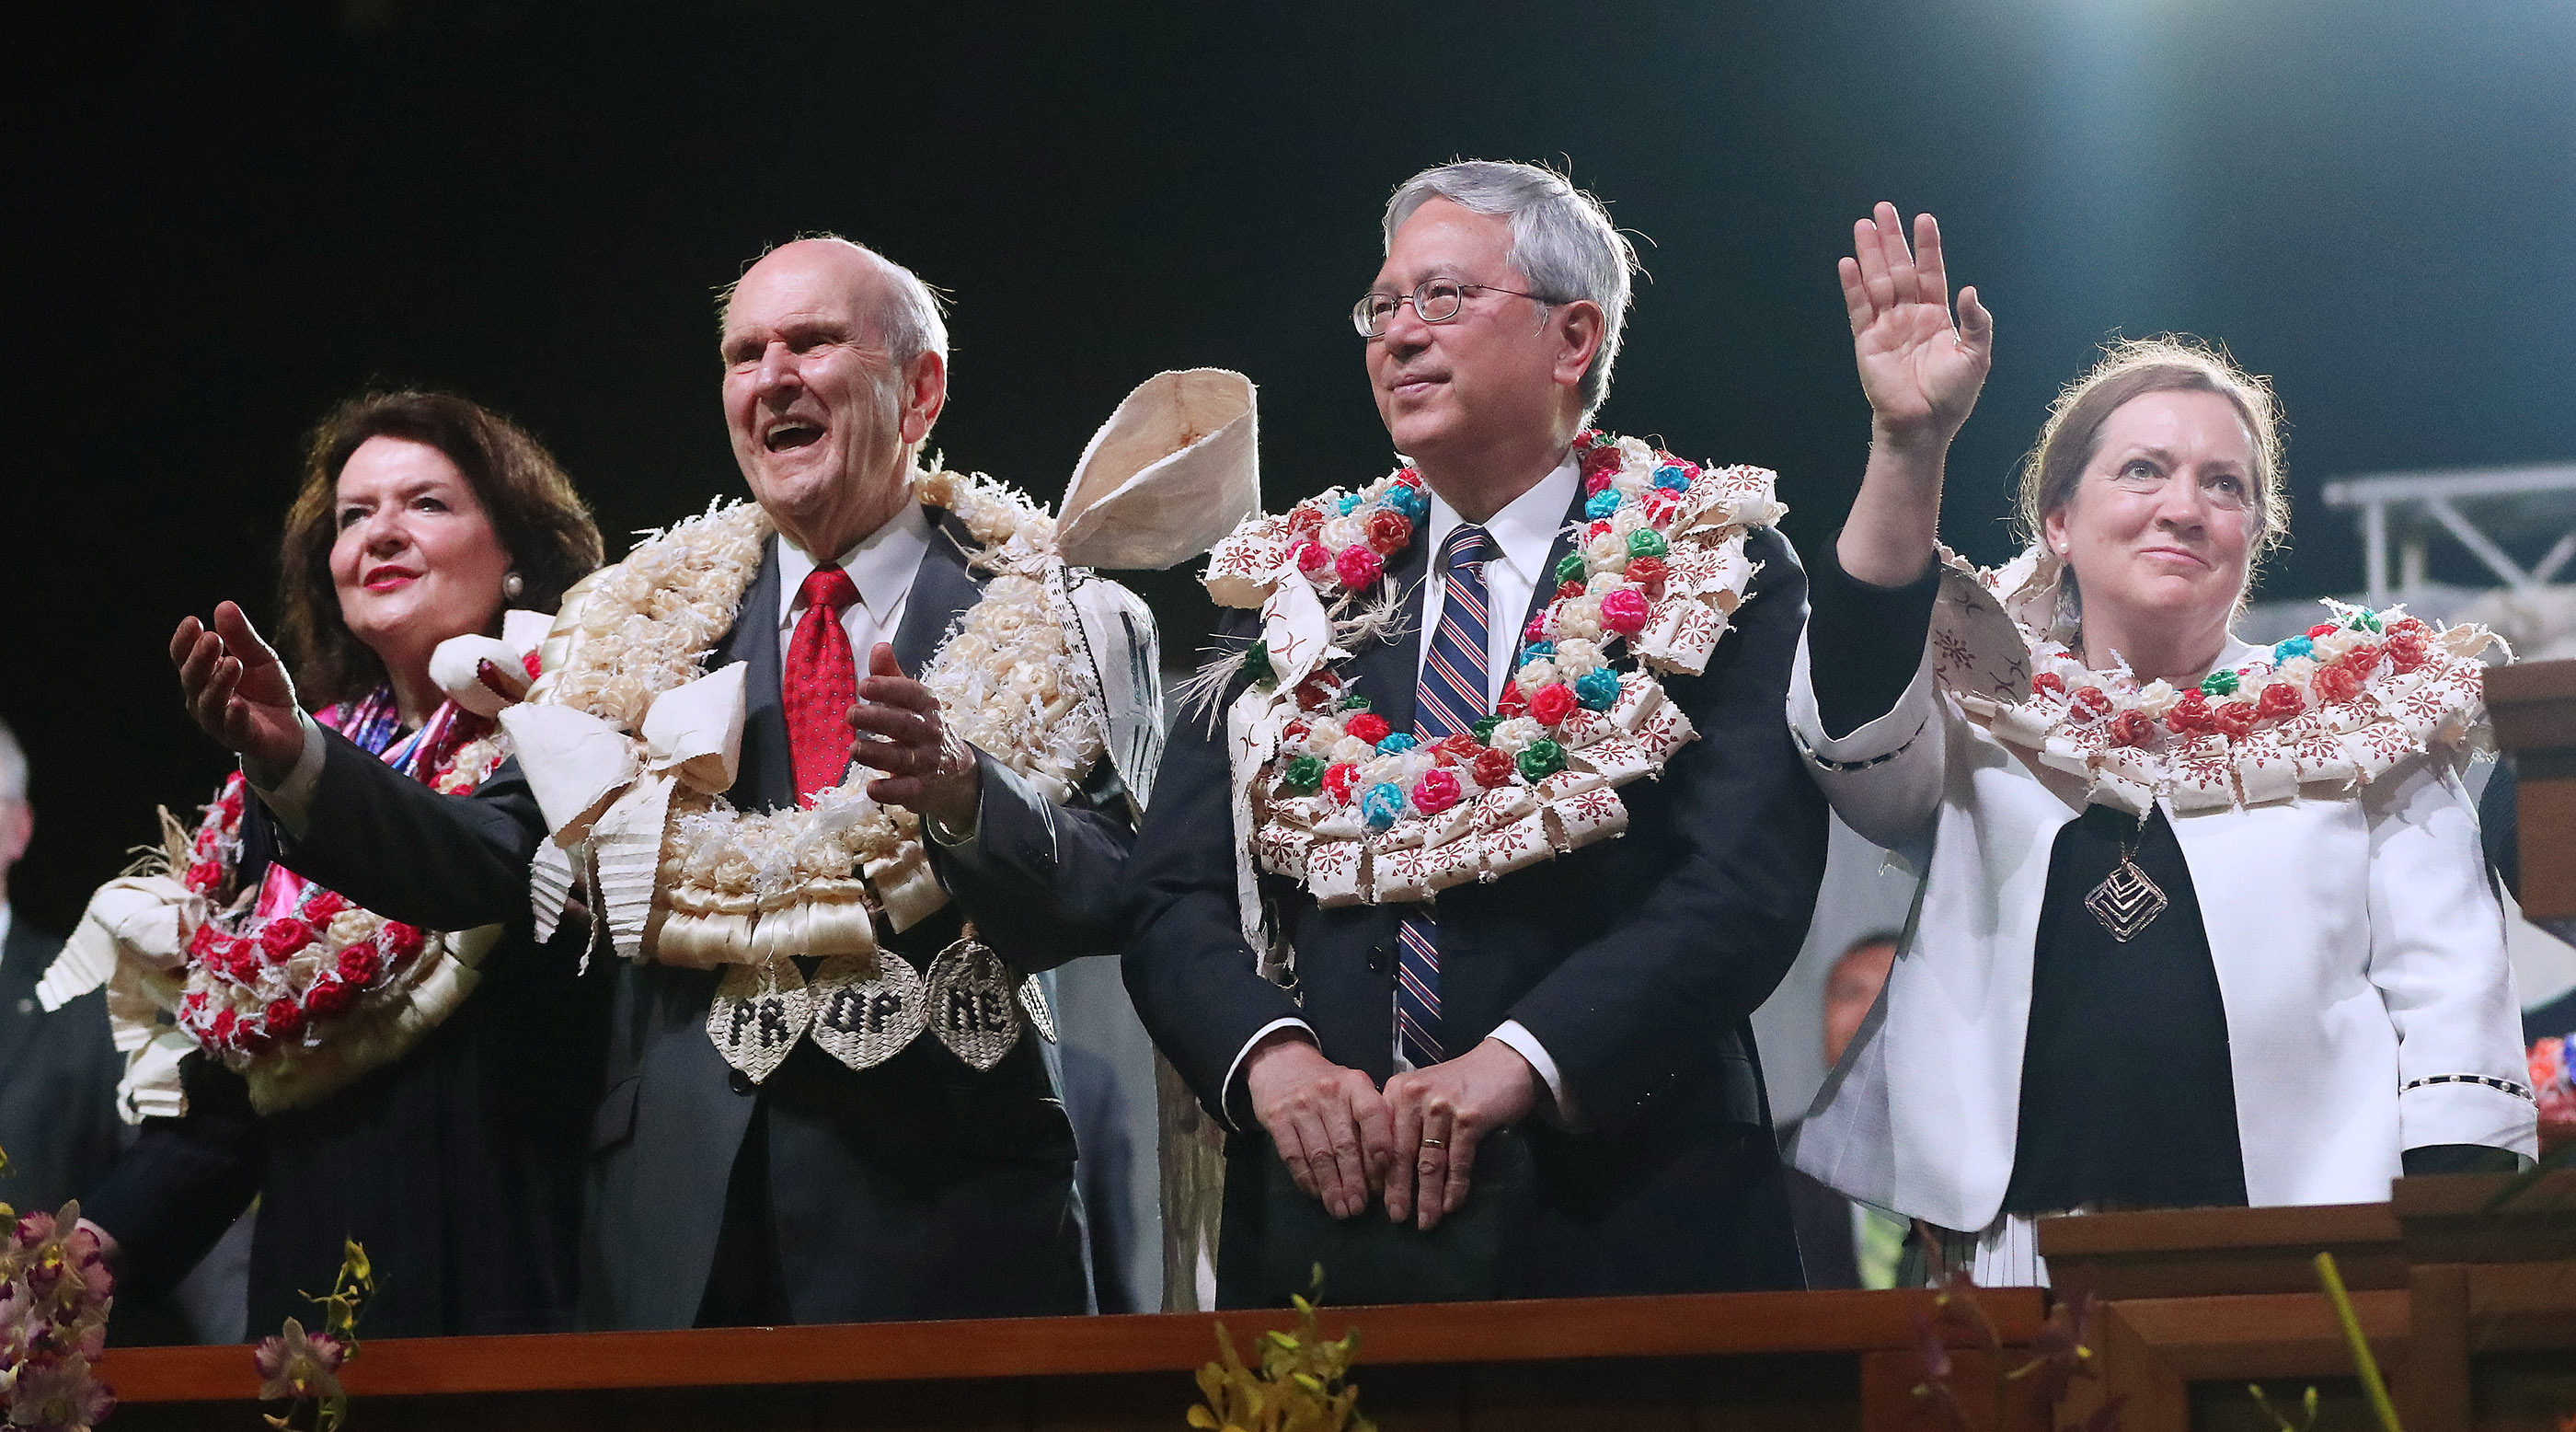 President Russell M. Nelson of The Church of Jesus Christ of Latter-day Saints and his wife, Sister Wendy Nelson, and Elder Elder Gerrit W. Gong of the Quorum of the Twelve Apostles and his wife, Sister Susan Gong, wave goodbye to attendees after a devotional in Nausori, Fiji, on May 22, 2019.